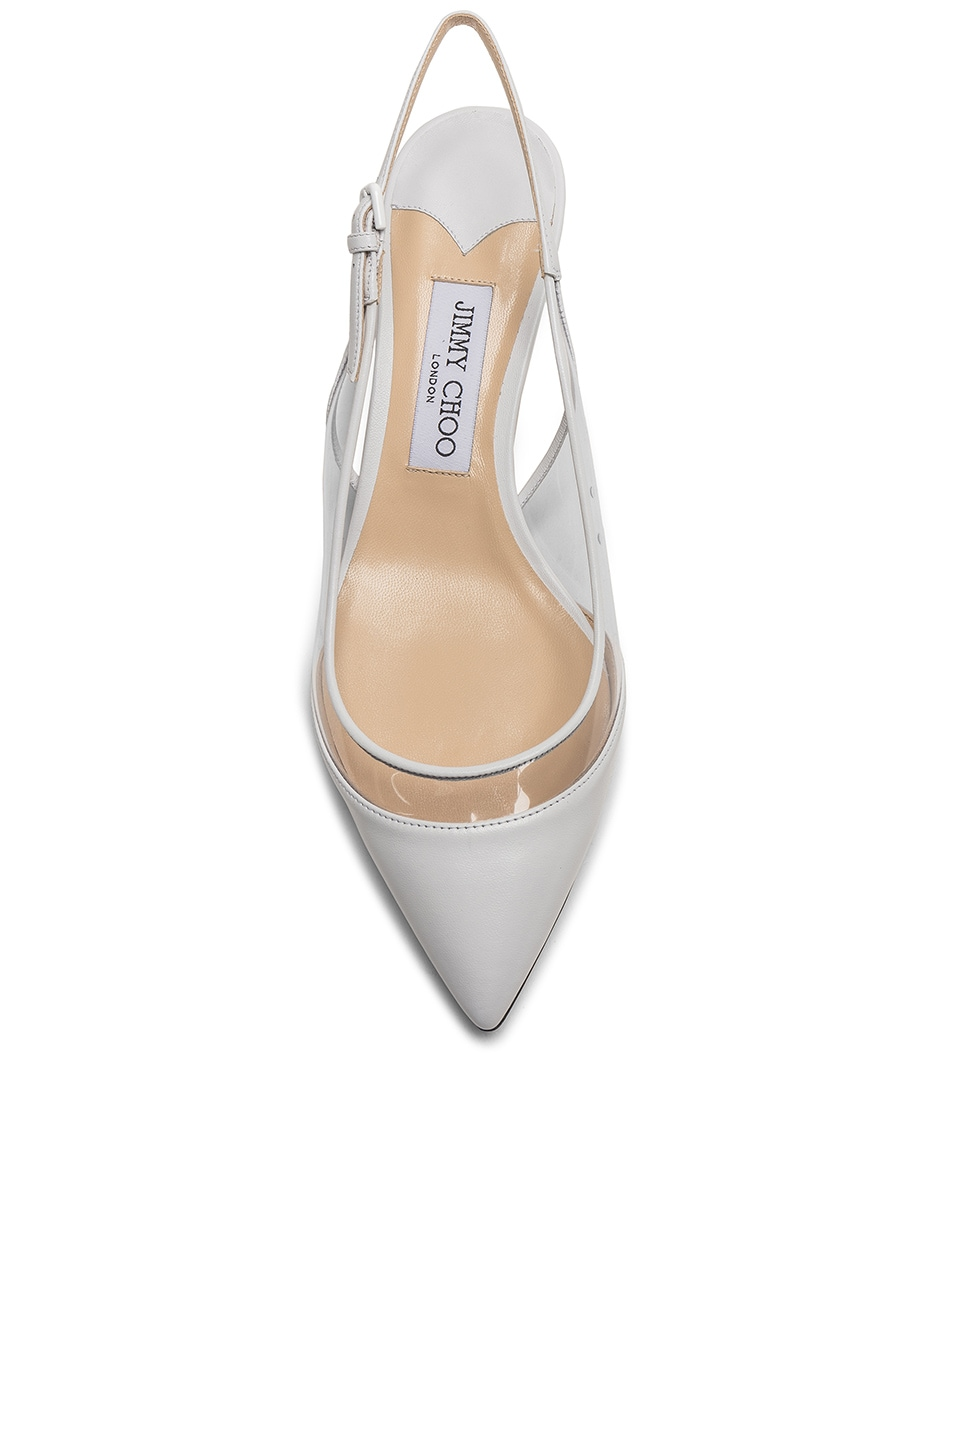 Image 4 of Jimmy Choo Gemma 40 Leather Plexi Slingback in White & Clear